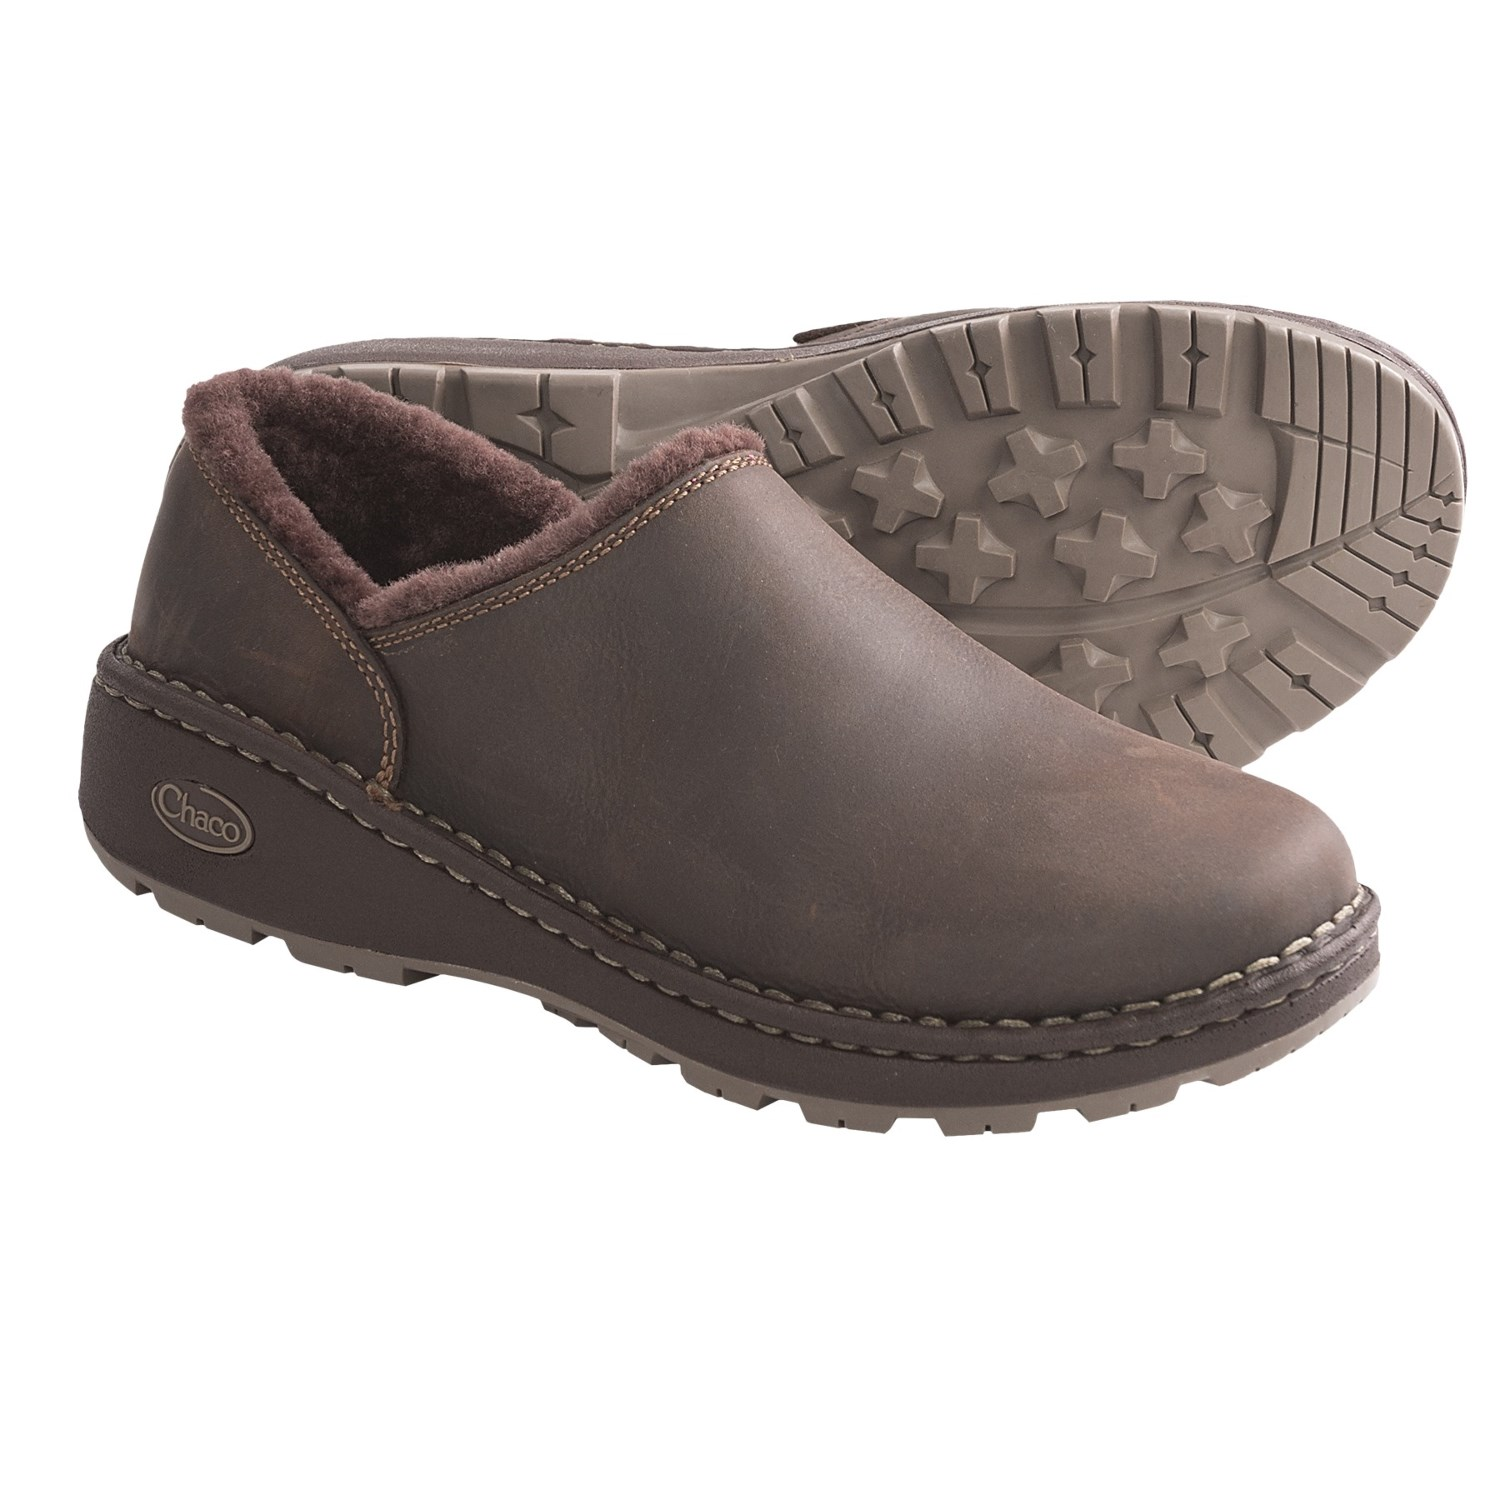 chaco zaagh baa shoes leather for save 73